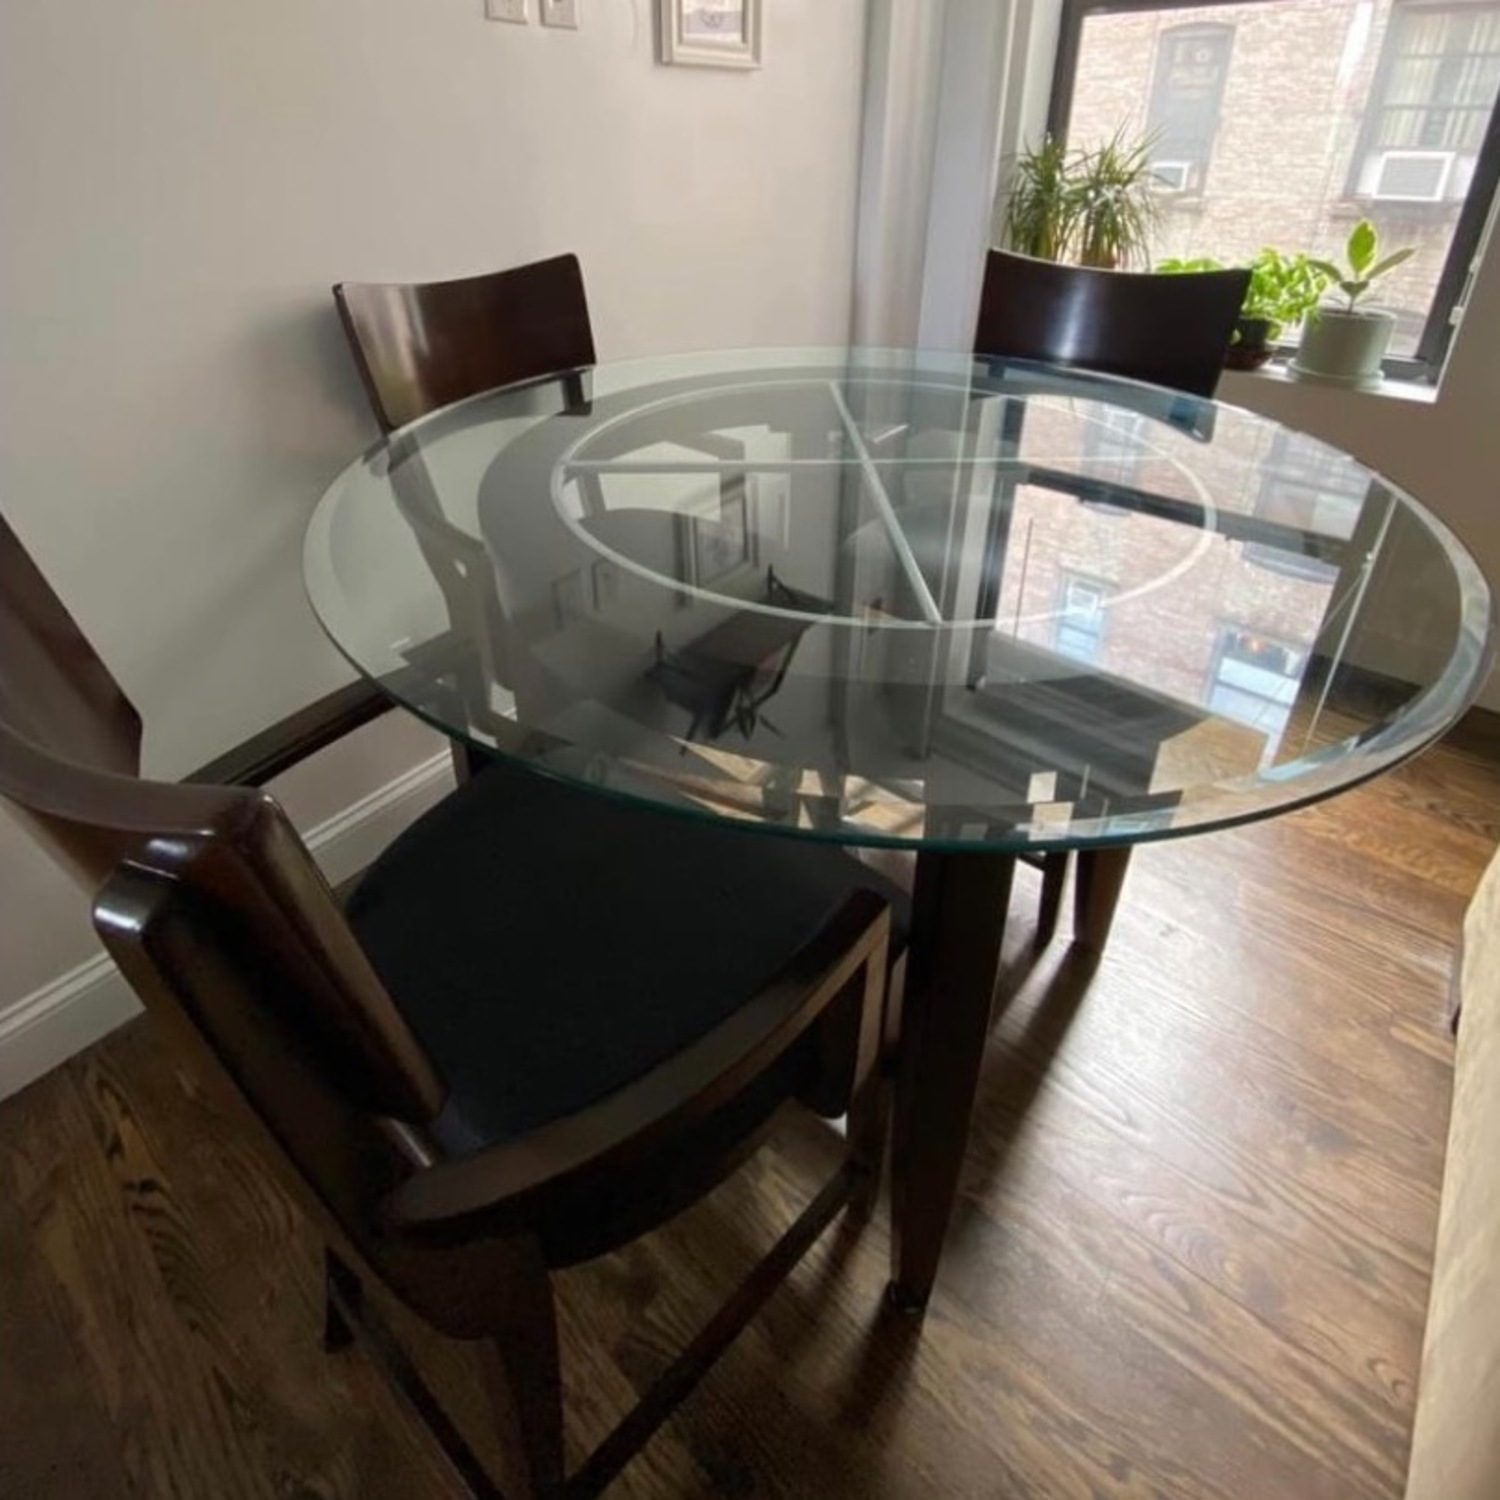 High Top Dining Table Set - Glass & Wood 4 Chairs - image-2